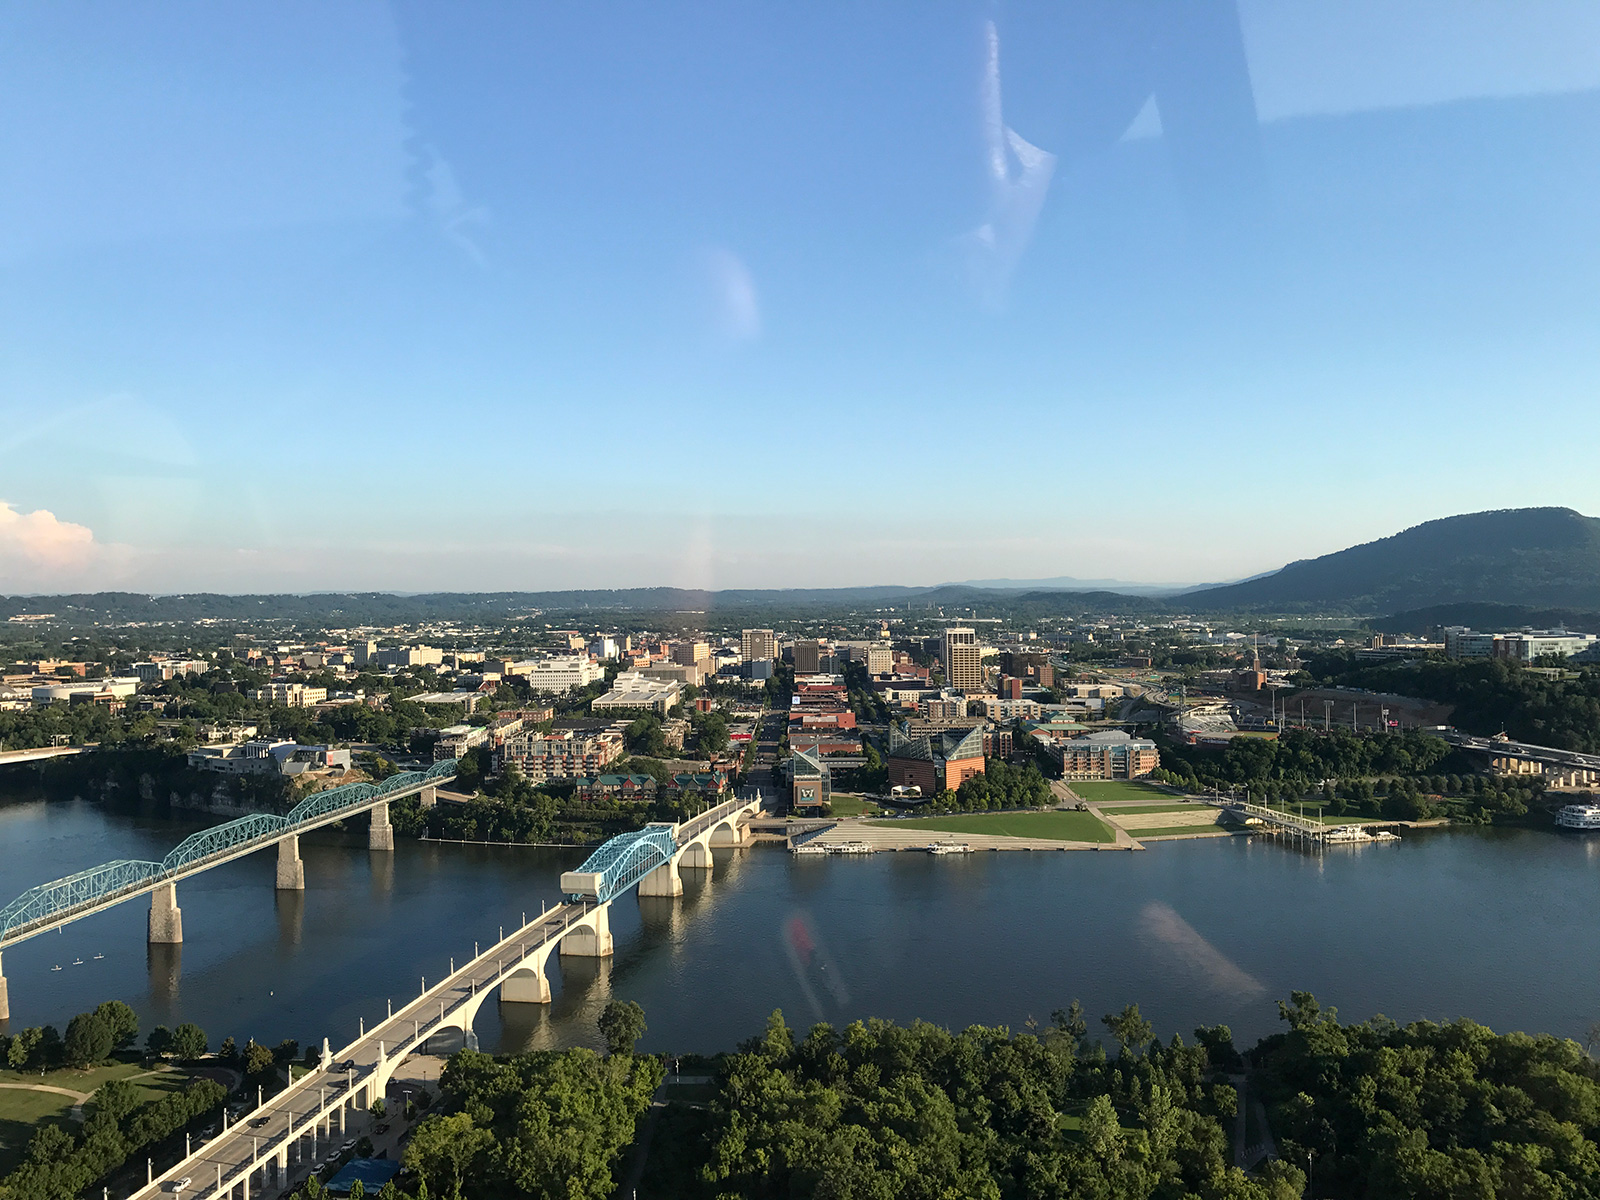 Helicopter Rides with Rock Creek Aviation in Chattanooga, TN by Jets Like Taxis